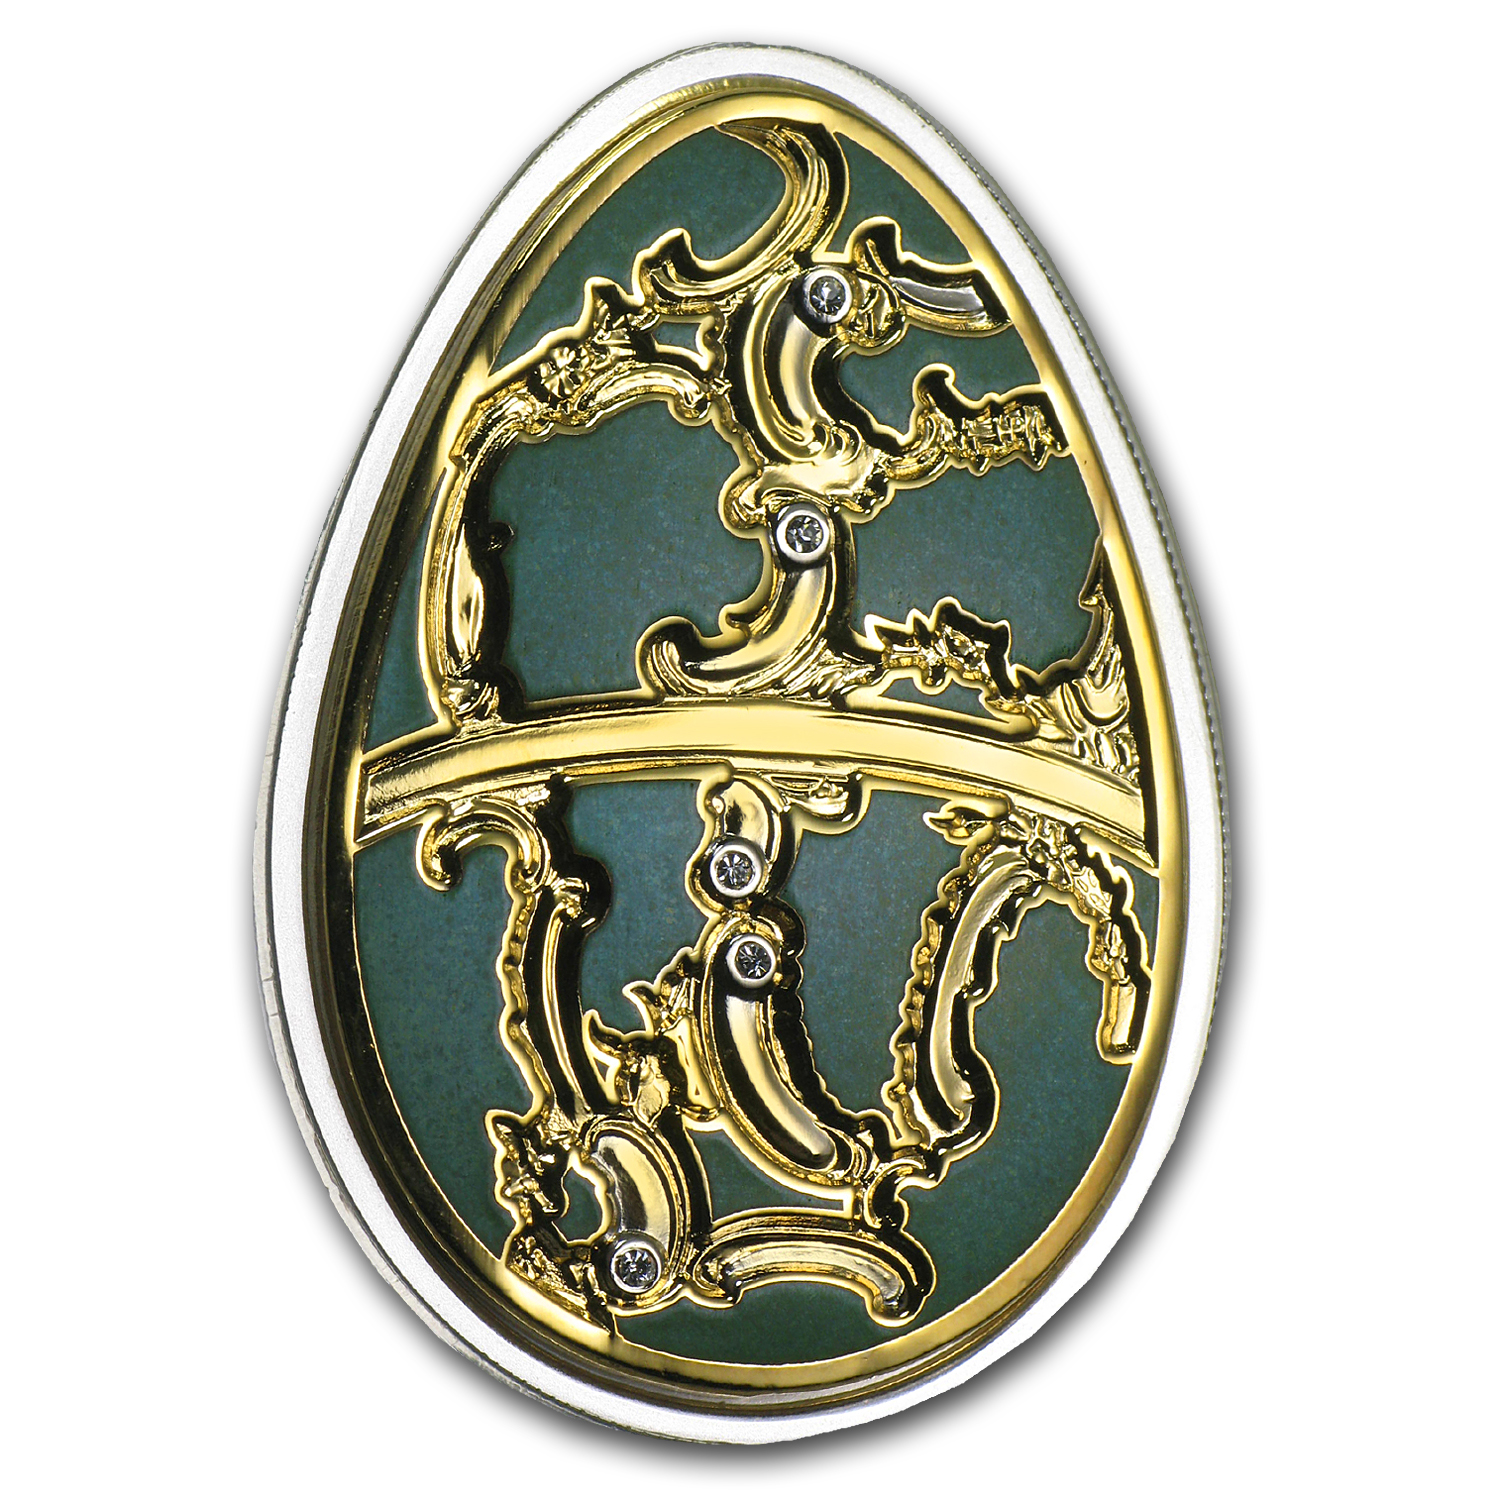 Cook Islands 2013 Silver Proof Imperial Egg in Cloisonné - Olive